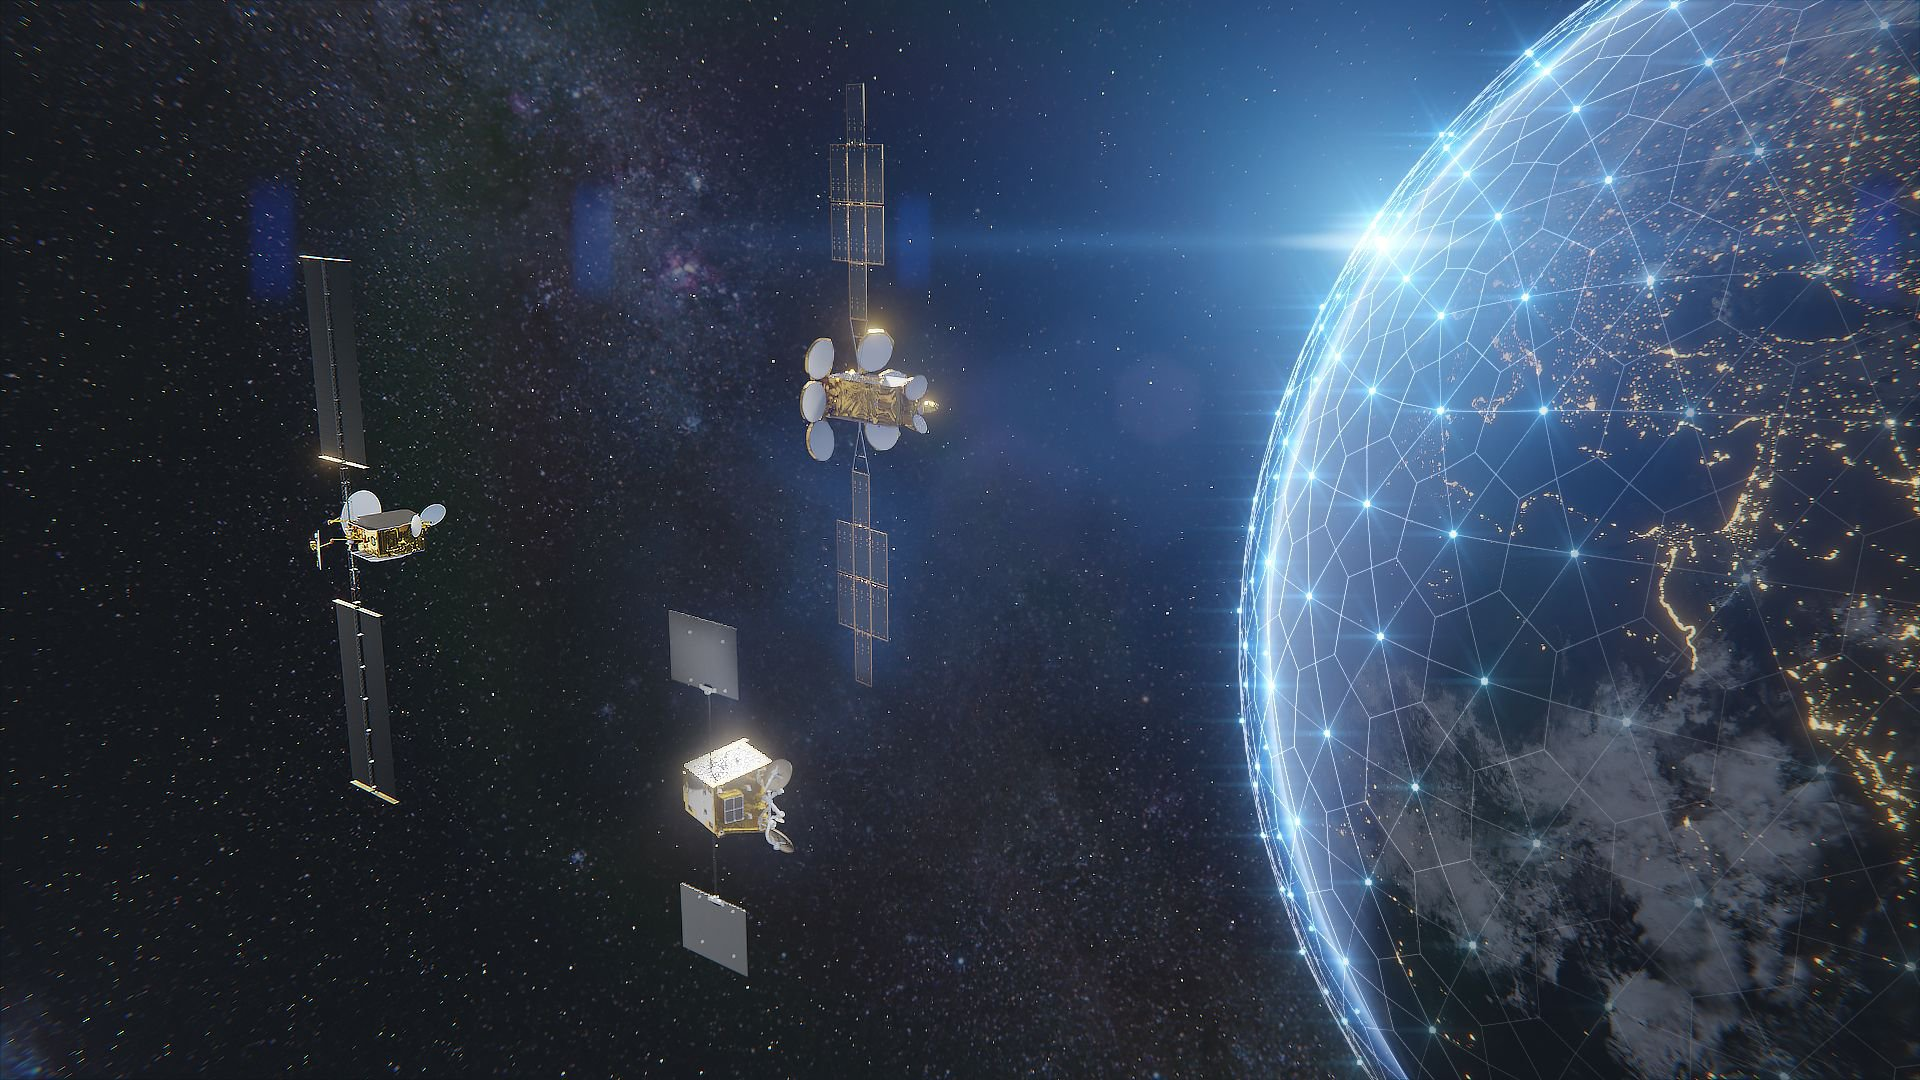 Space based network infrastructure will very soon complement the 5G terrestrial mobile networks that are currently being deployed. This will lead to satellite communications becoming an integrated and indispensable part of the global telecommunications ecosystem with the potential to grow existing market segments such as backhauling and to expand into new areas such as hybrid networks and the Internet of Things (IoT). The use of satellites will strongly contribute to the United Nations Sustainable Development Goals for a better society and sustainable growth across industrial sectors.